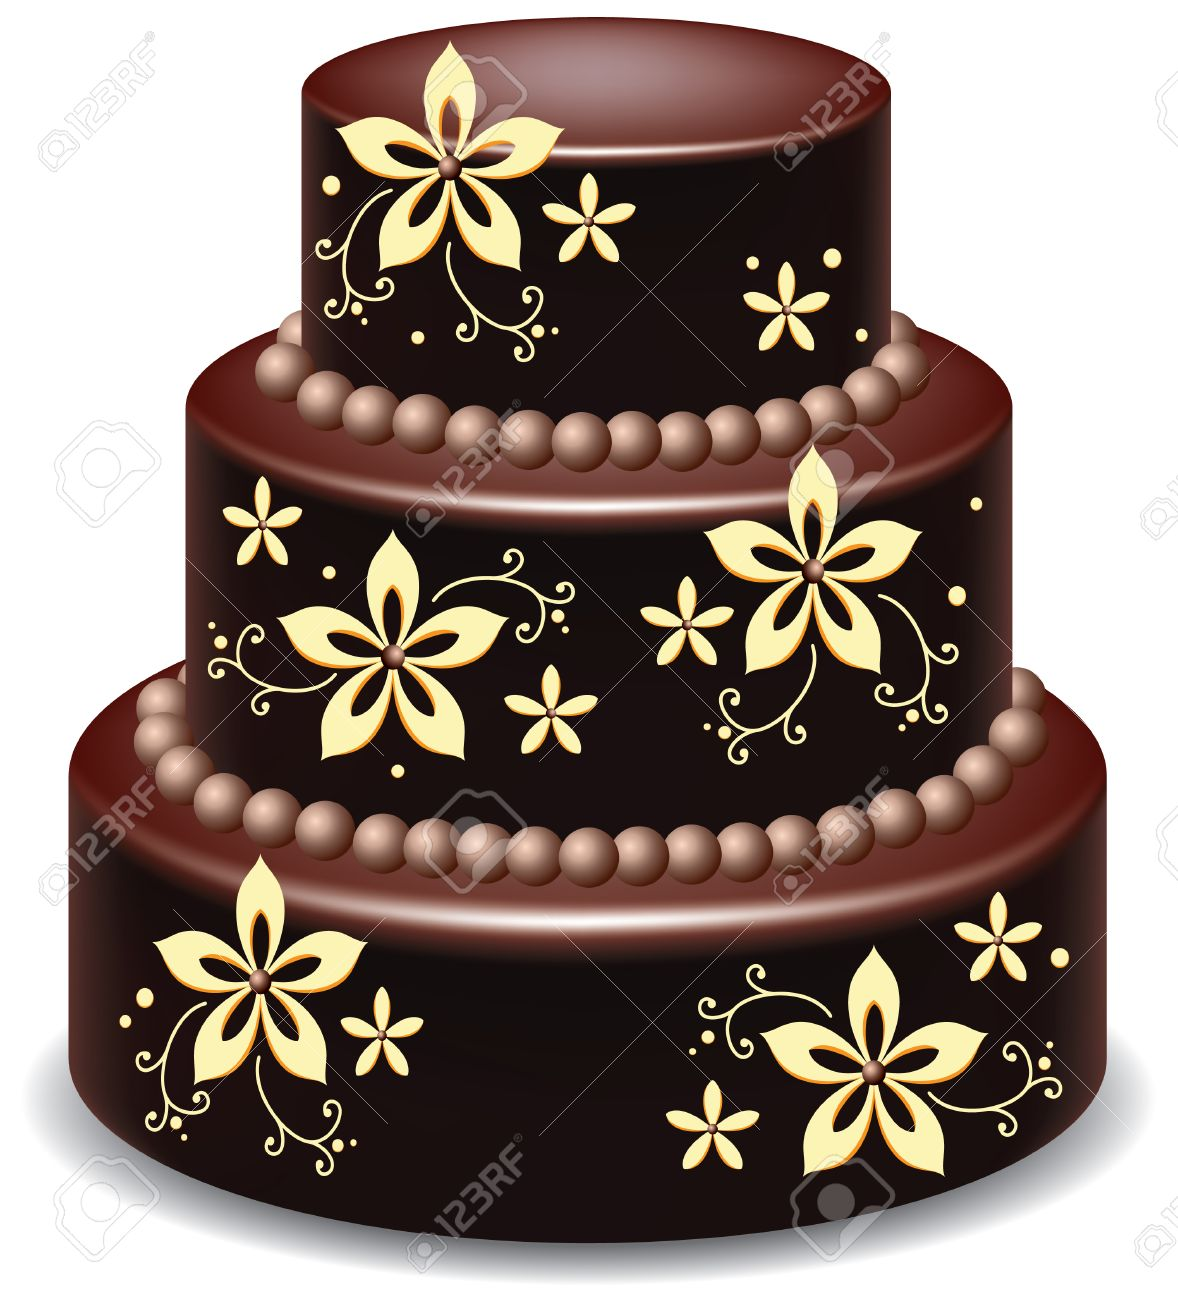 big delicious chocolate cake Stock Vector - 8977778